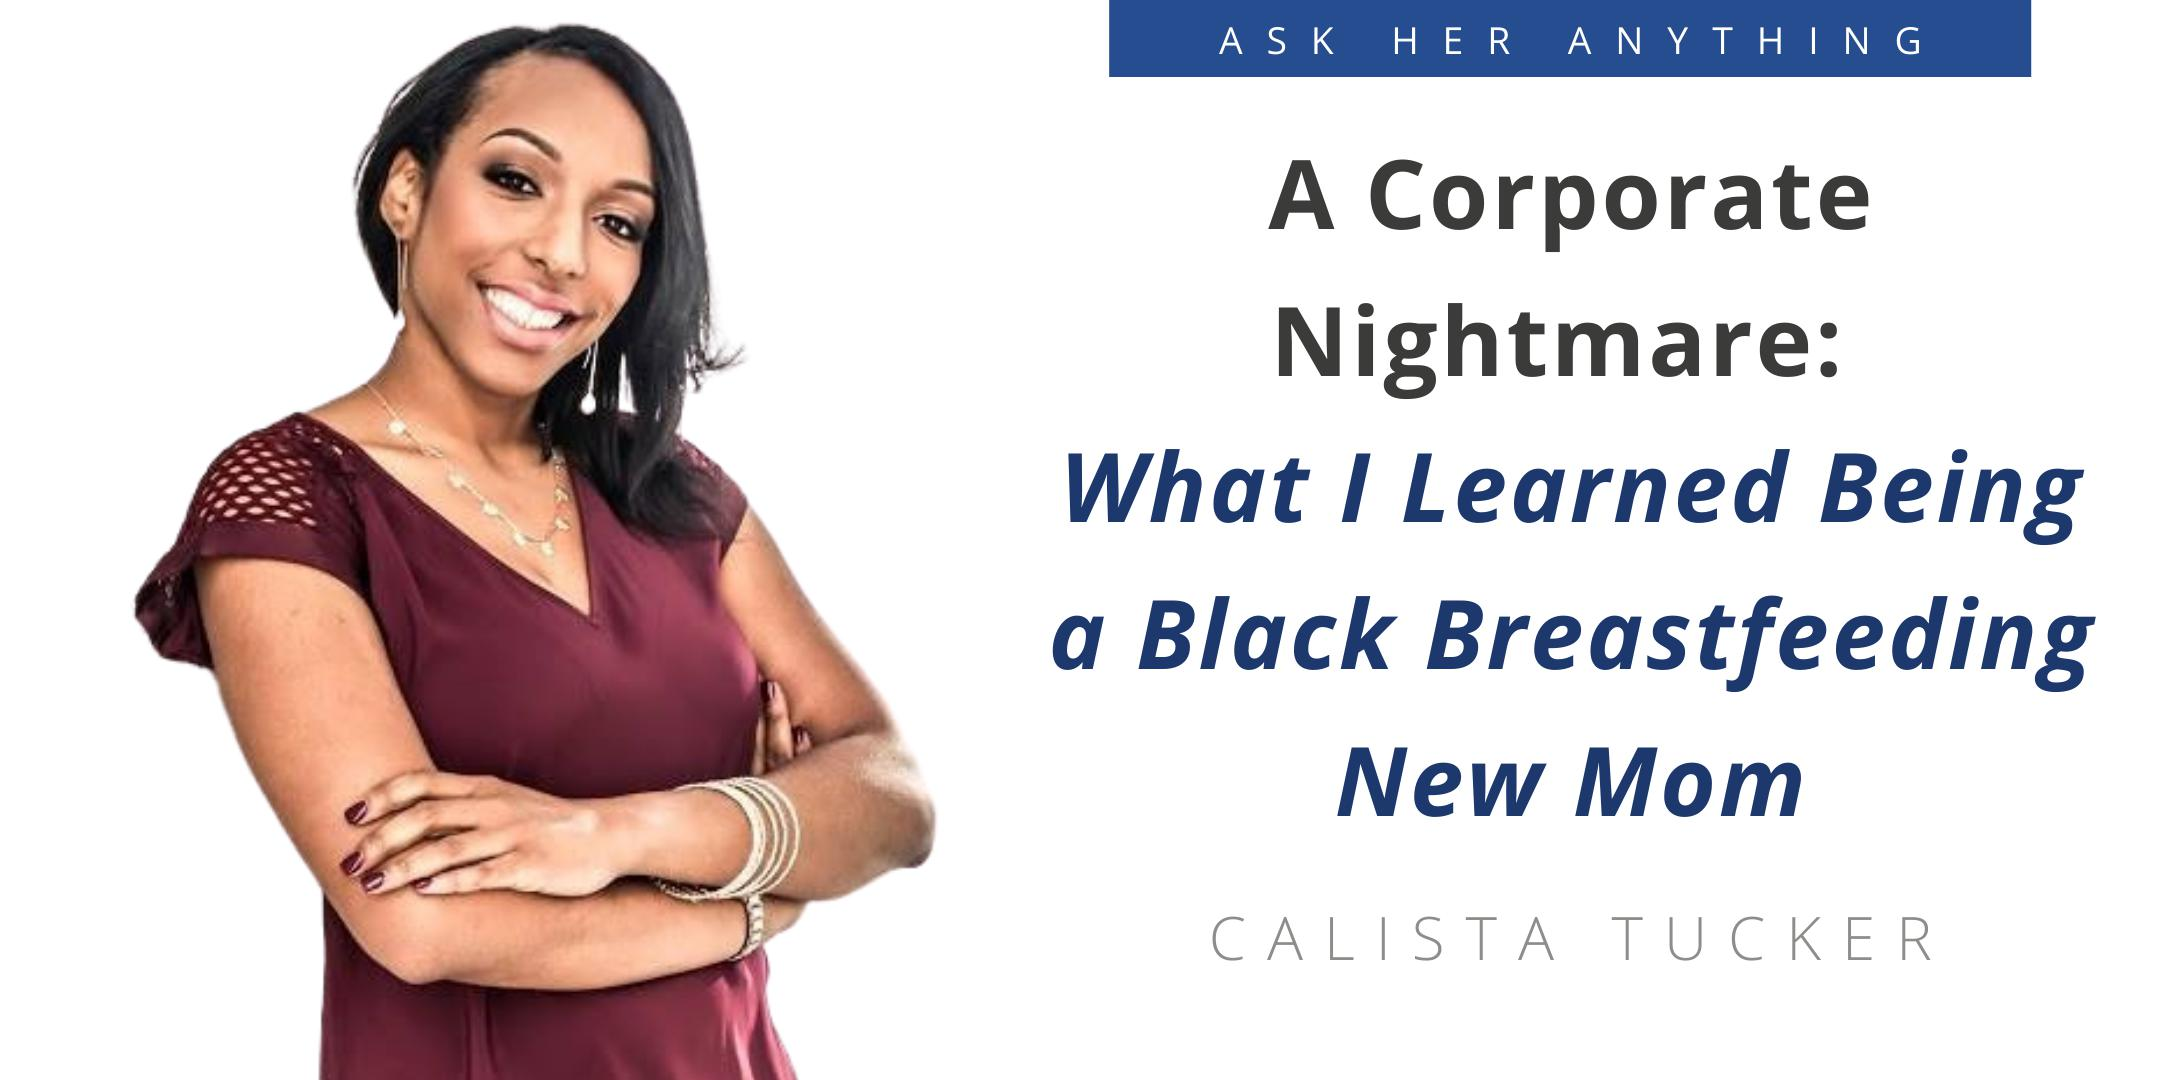 A Corporate Nightmare:  What I Learned Being a Black Breastfeeding New Mom